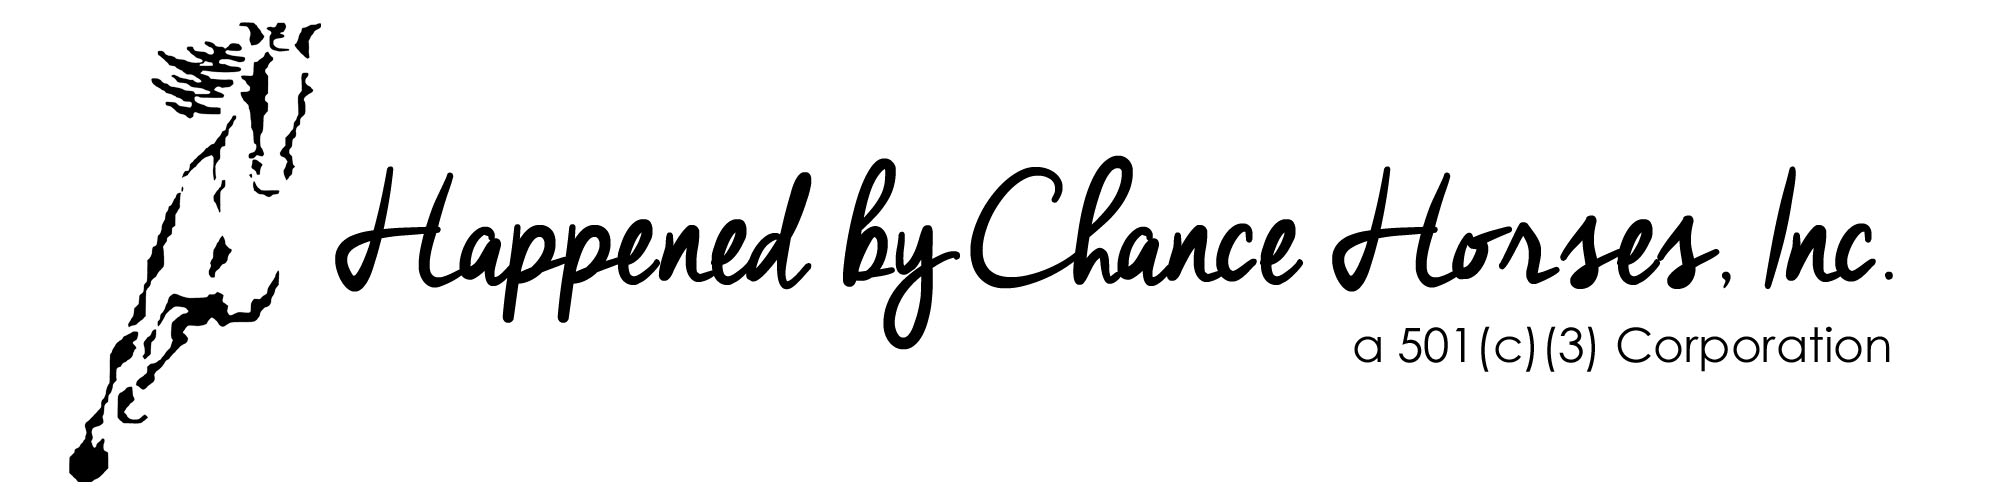 Happened by Chance Horses, Inc.